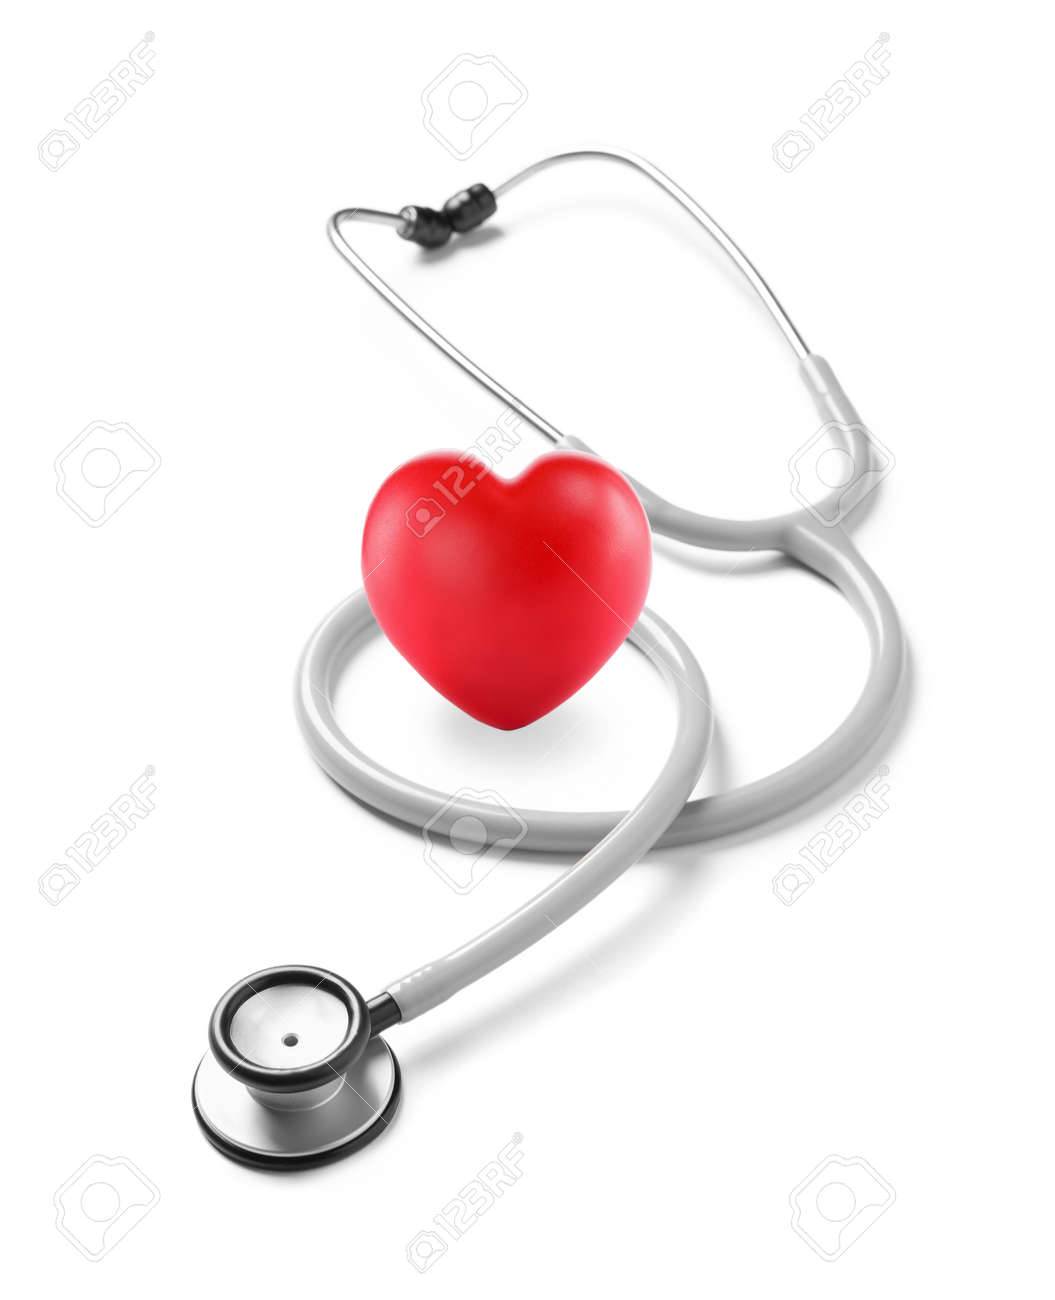 Stethoscope and red heart on white background - 166363491